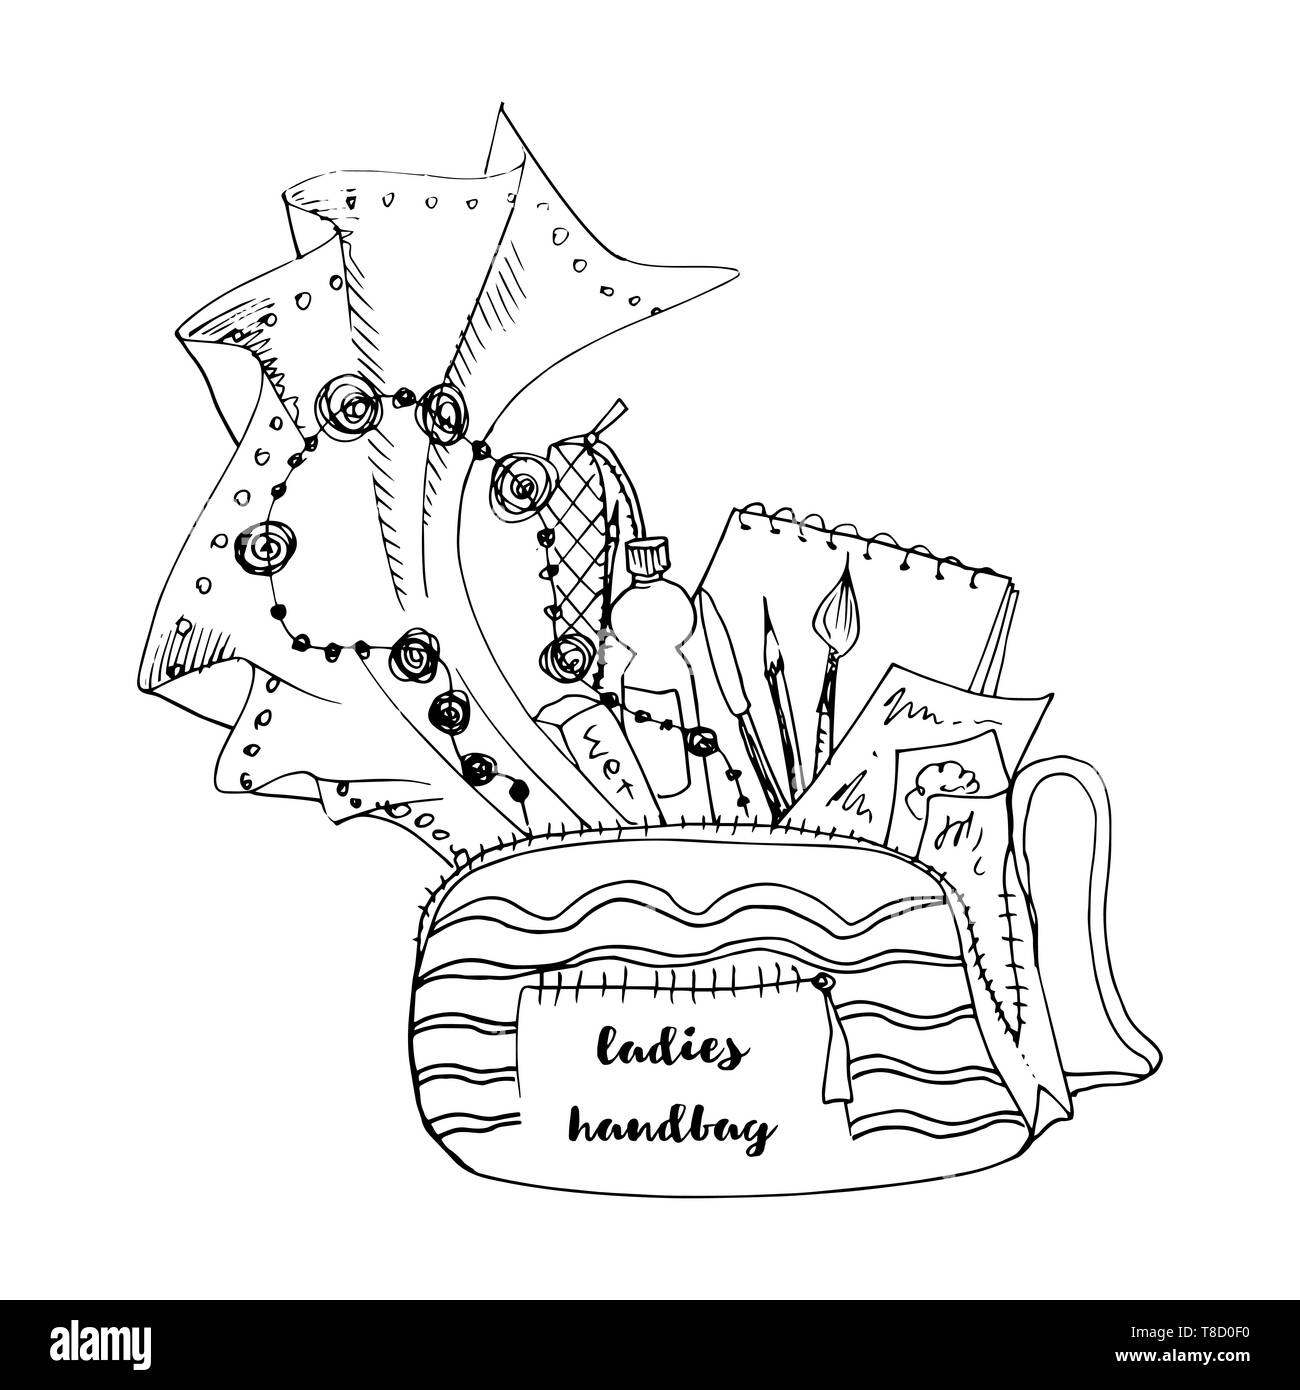 Ladies handbag doodle style illustration with black outlines - Stock Image